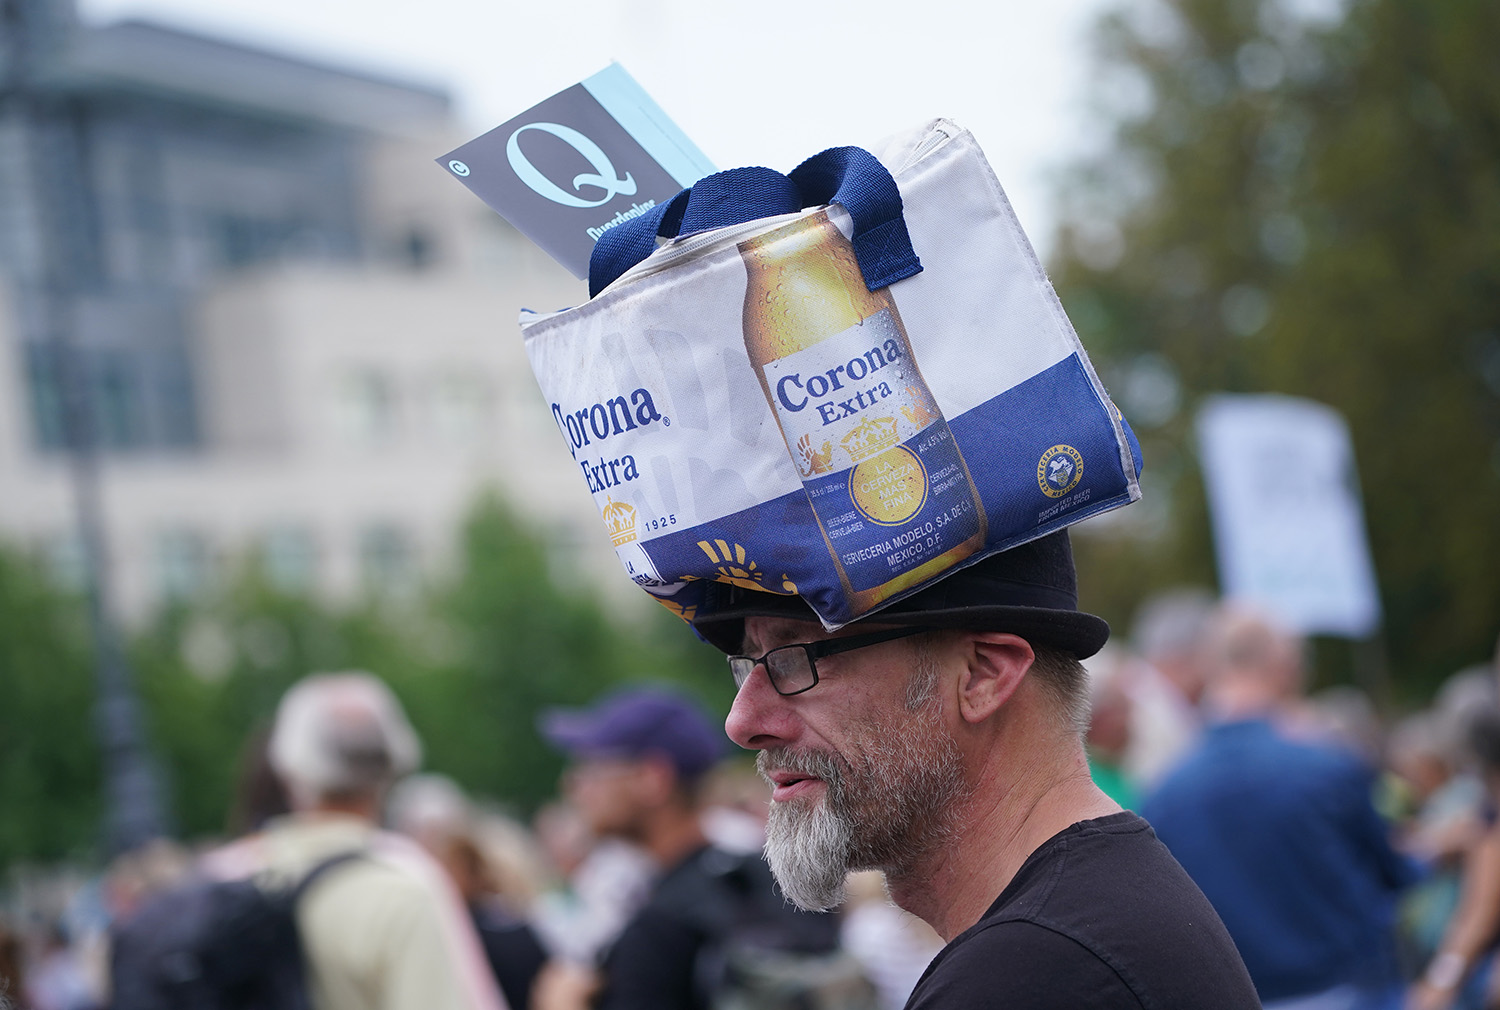 A man wearing a Corona beer bag and a Querdenker Q flag attends a gathering of coronavirus skeptics on the eve of a planned protest march in Berlin on Aug. 28. The Querdenker group sees the pandemic as a conspiracy, and many Querdenker followers sympathize with the QAnon movement.